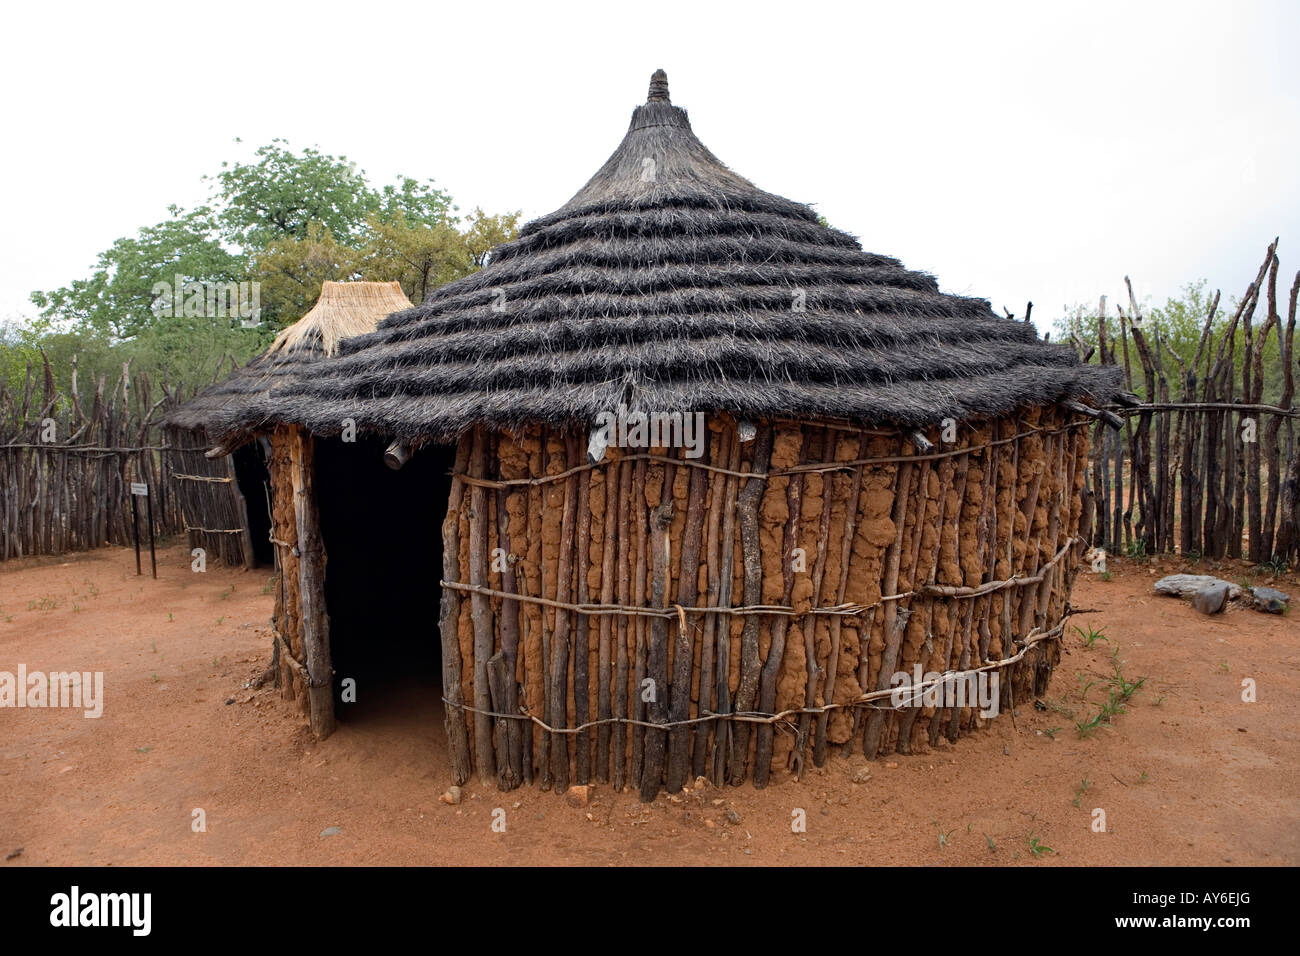 Krasivyj Dizajn Odnoetazhnogo Derevyannogo Doma as well Establishment moreover South African Houses as well Stock Photo Himba Homestead In Tsumeb Cultural Village Open Air Museum In Namibia 17008311 besides Watch. on 14